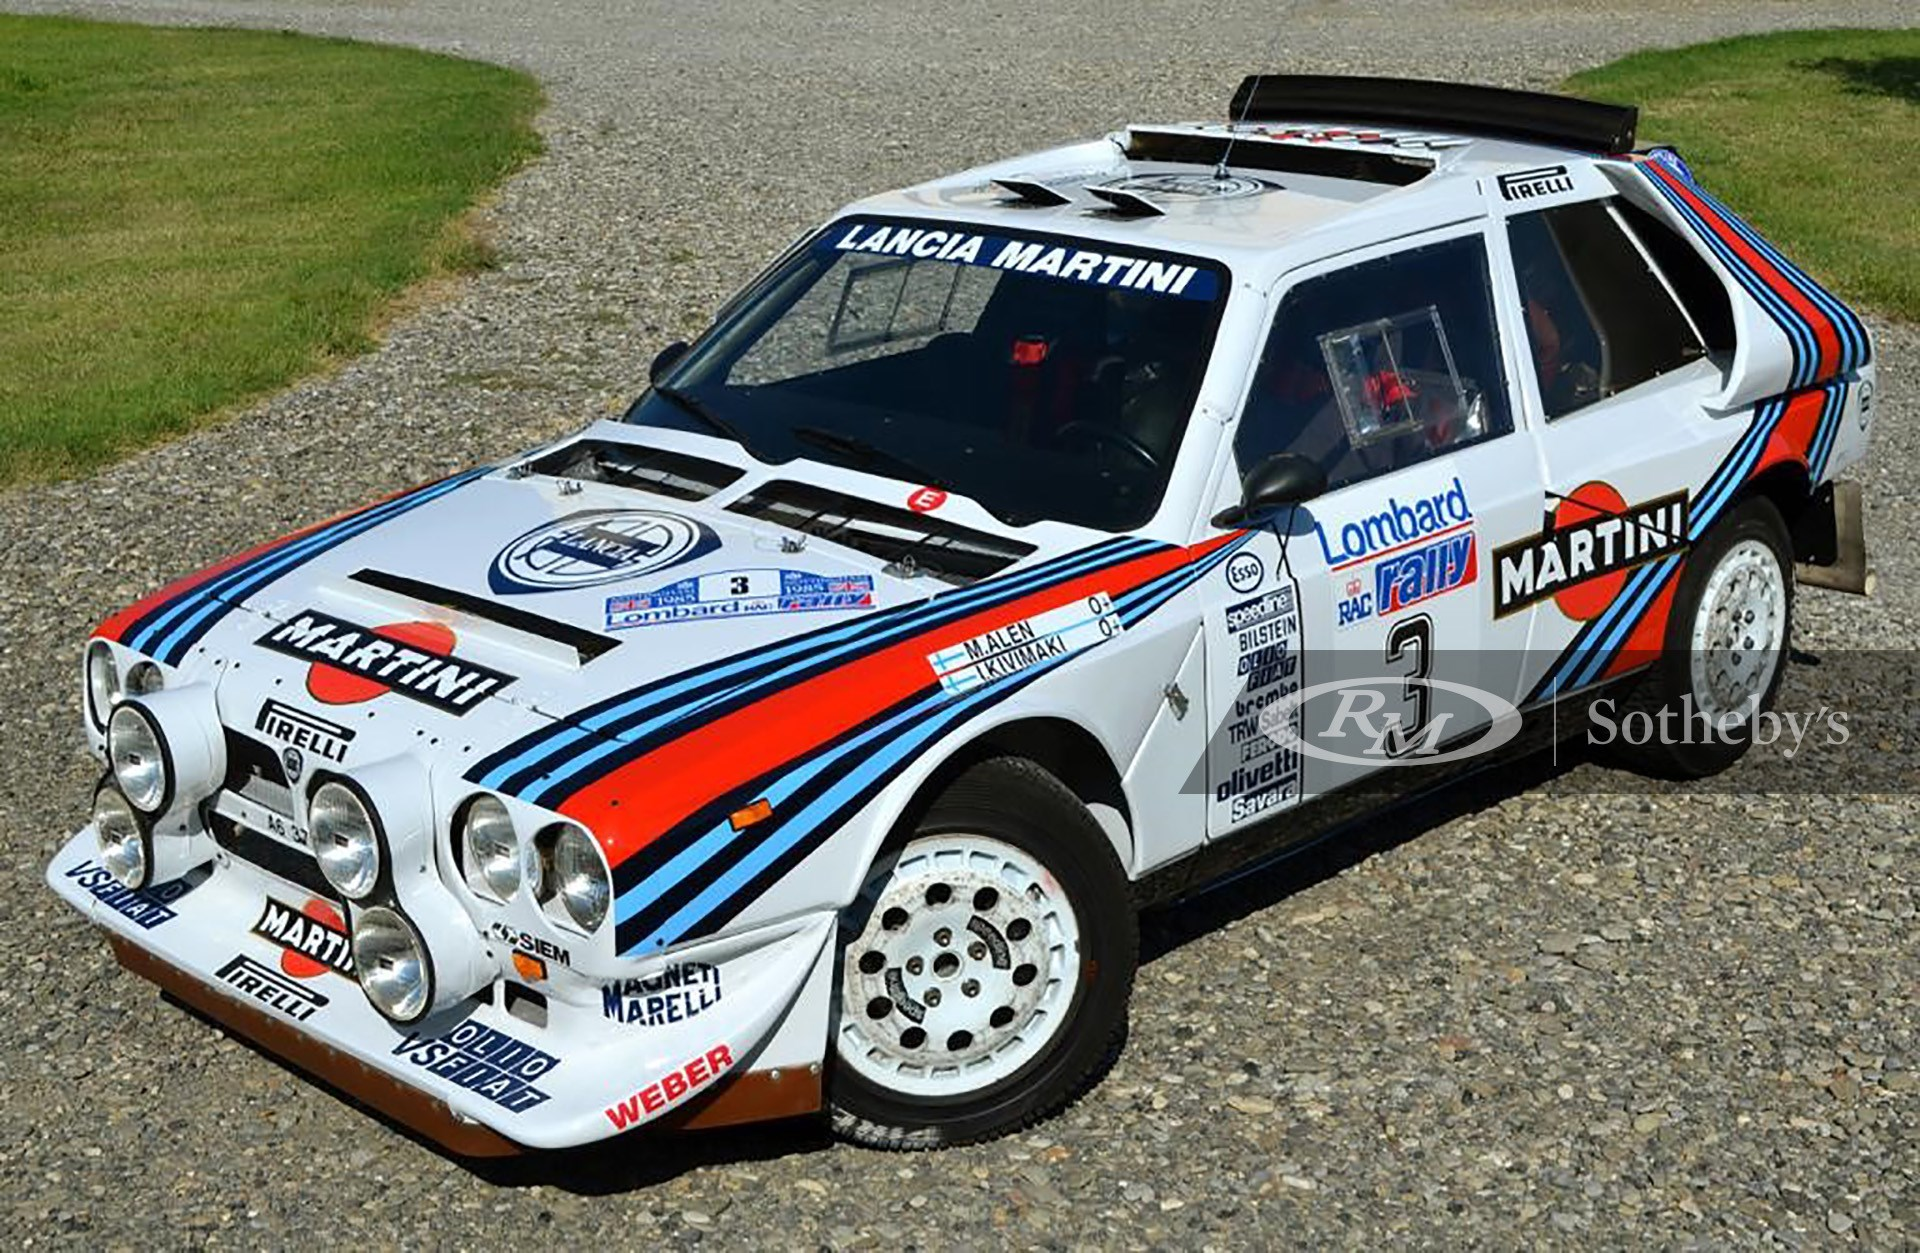 RM Sotheby's Private Sales, 1985 Lancia Delta S4 Rally